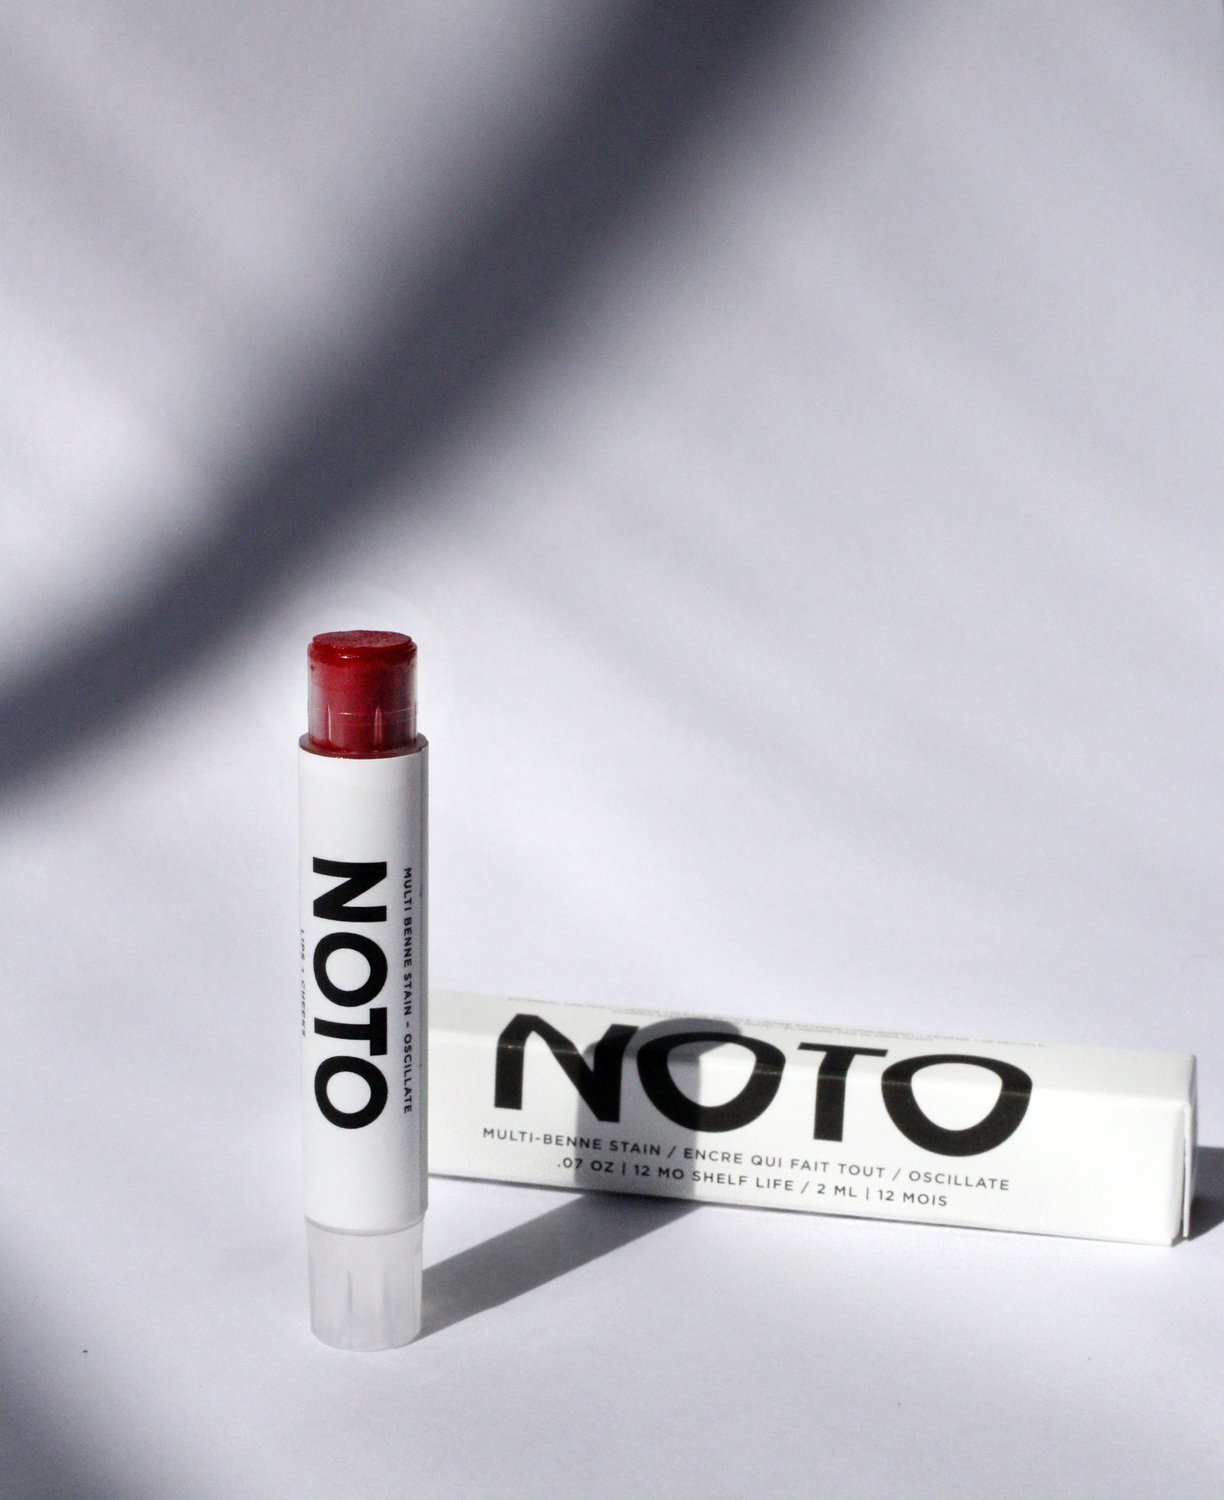 NOTO Multi-Benne Stain Stick in Oscillate. Available at EASE Toronto.